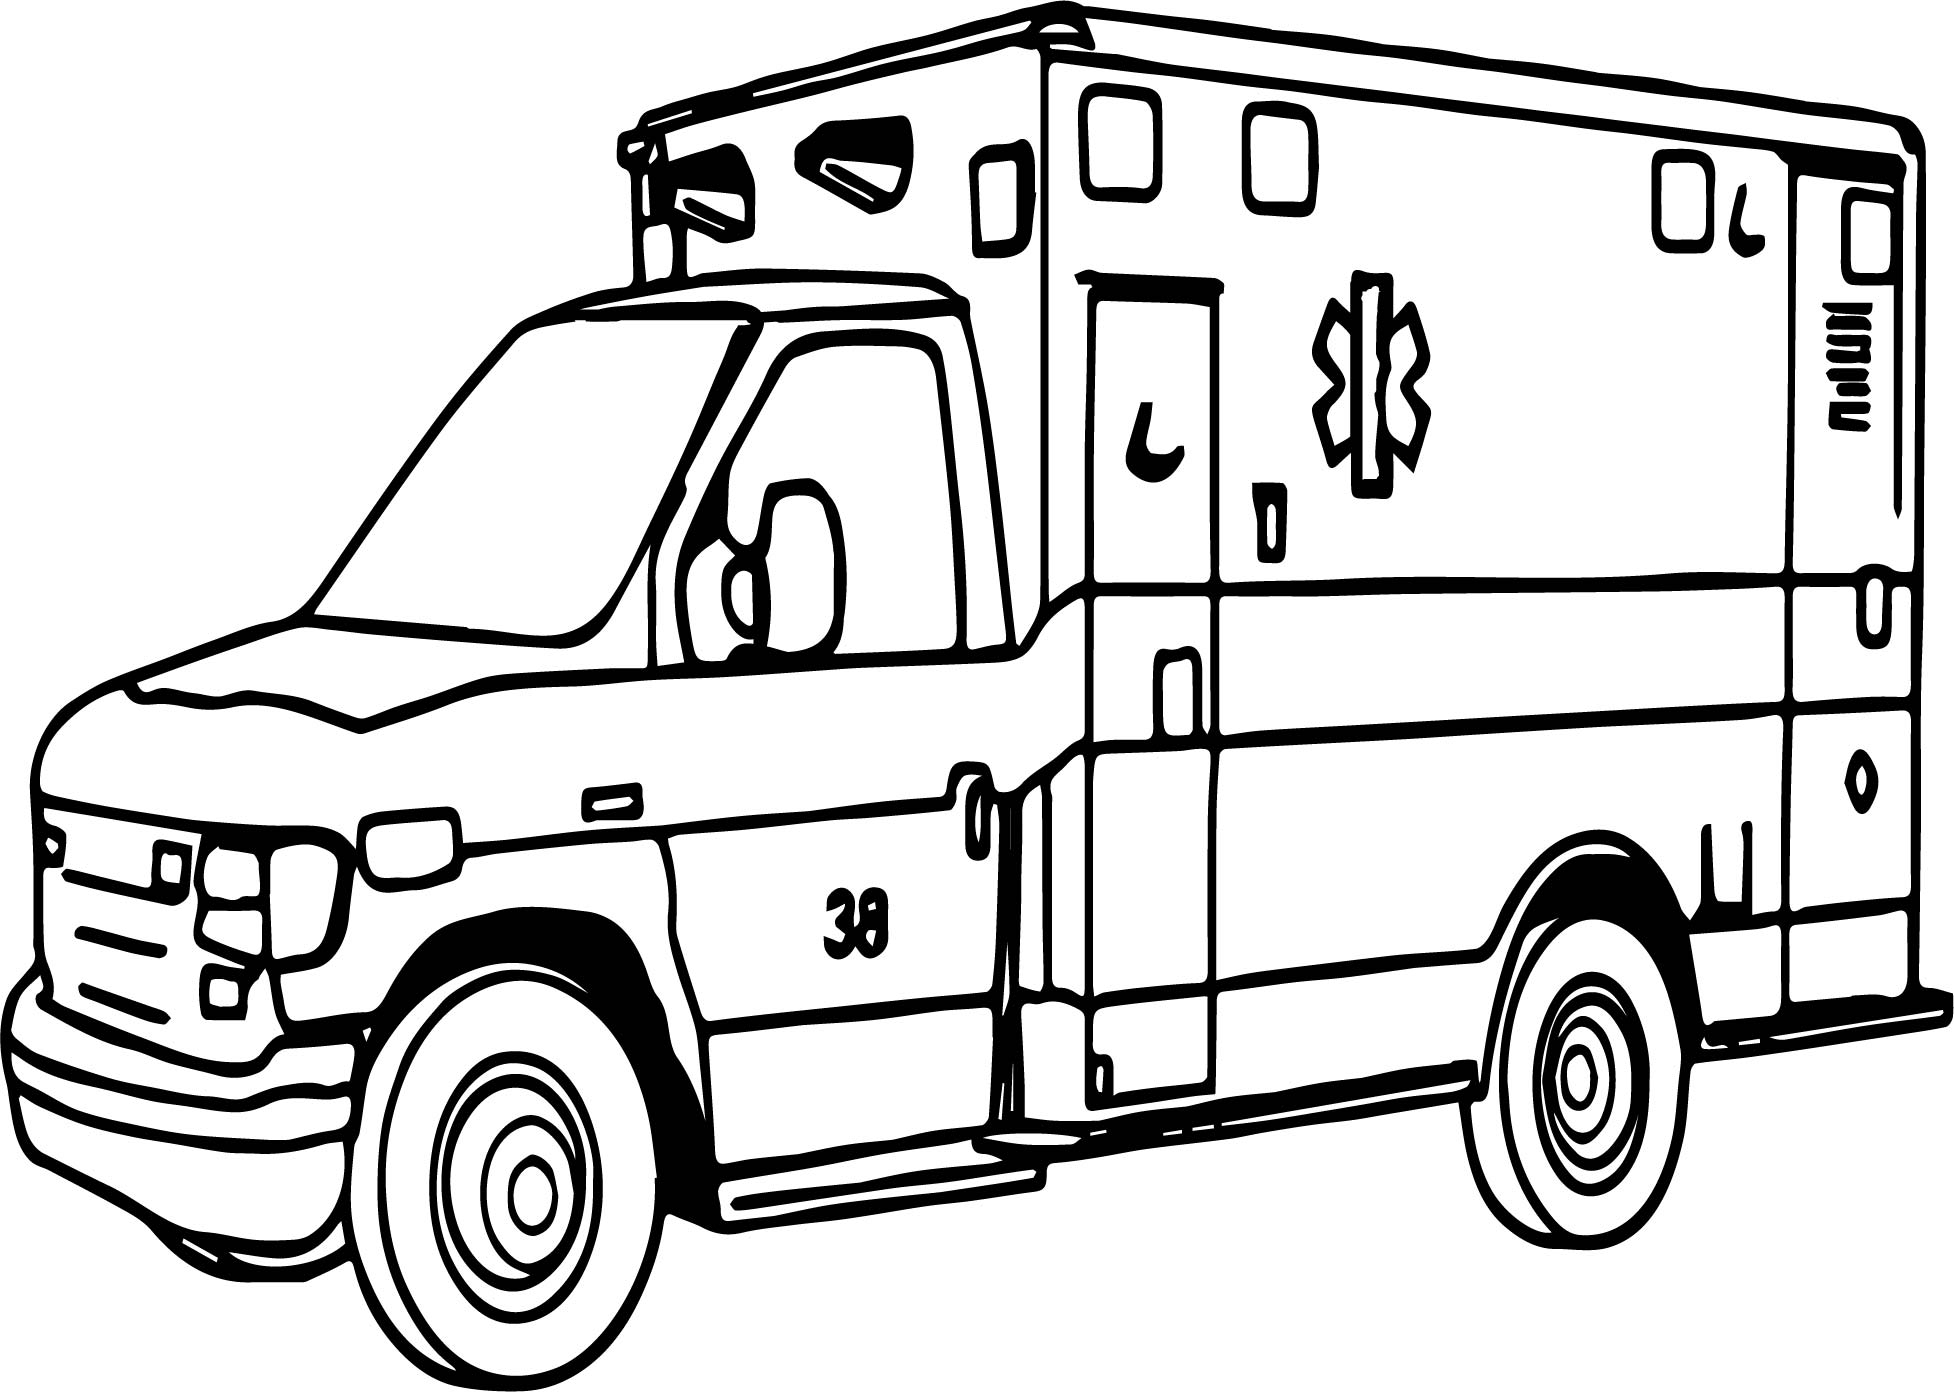 Important Ambulance Coloring Page Wecoloringpage Ambulance Colouring Pages